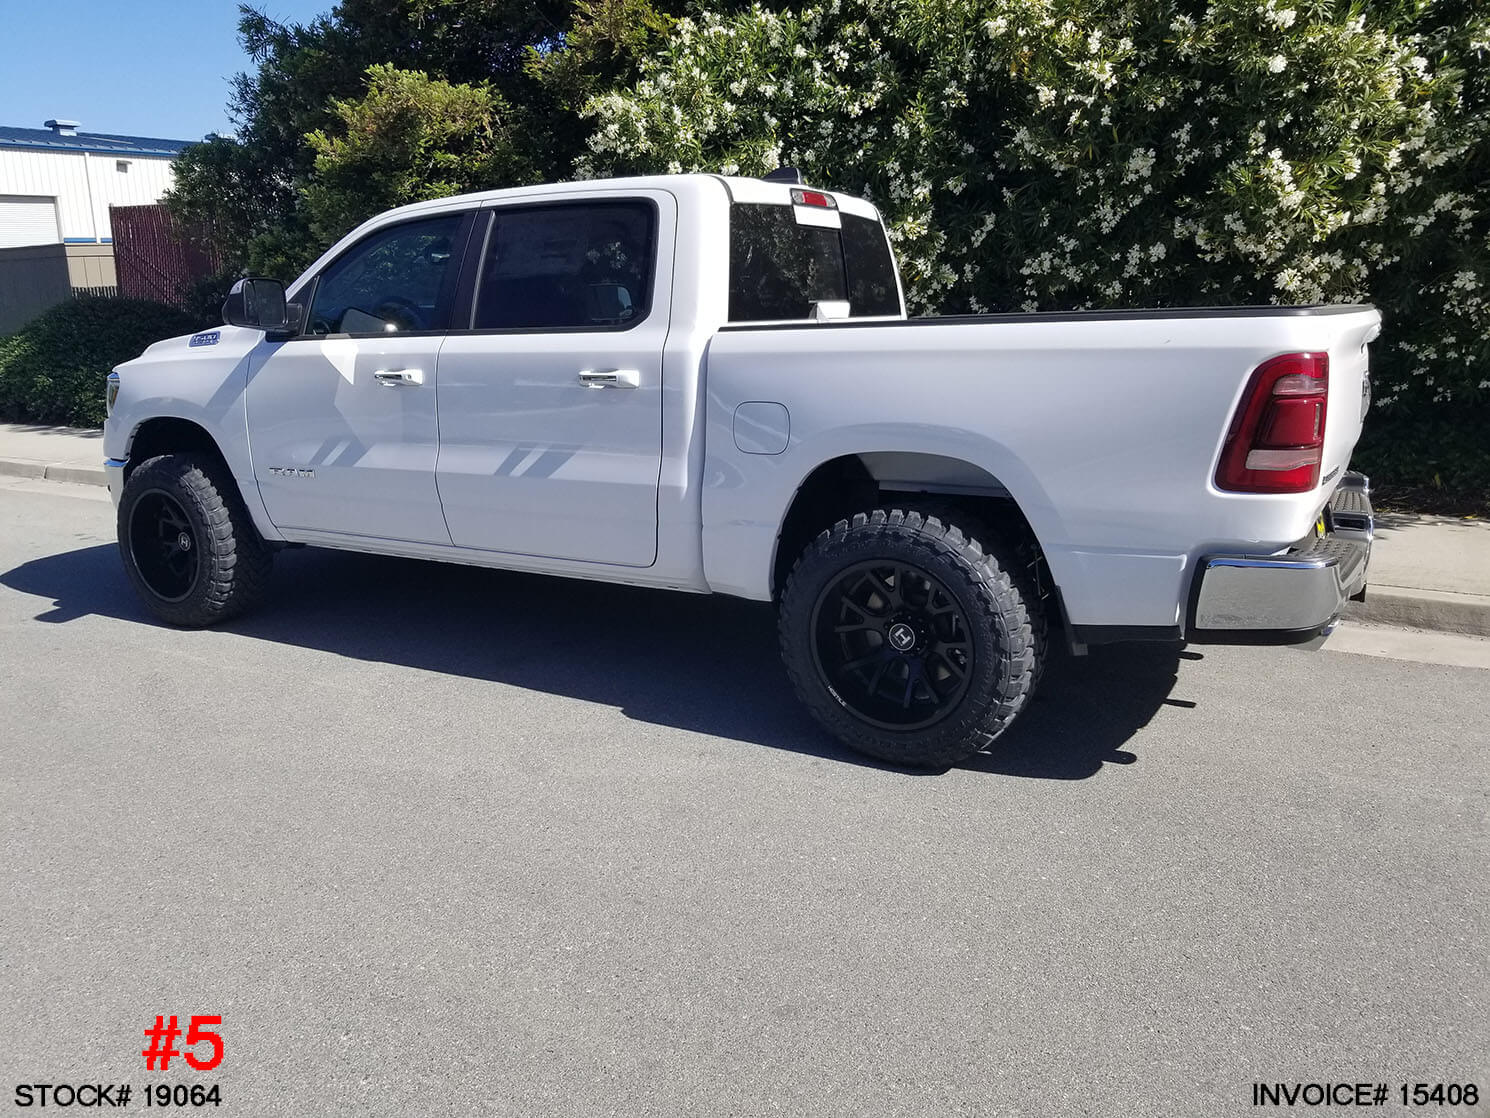 2019 DODGE RAM 1500 CREW CAB #19064 | Truck and SUV Parts Warehouse